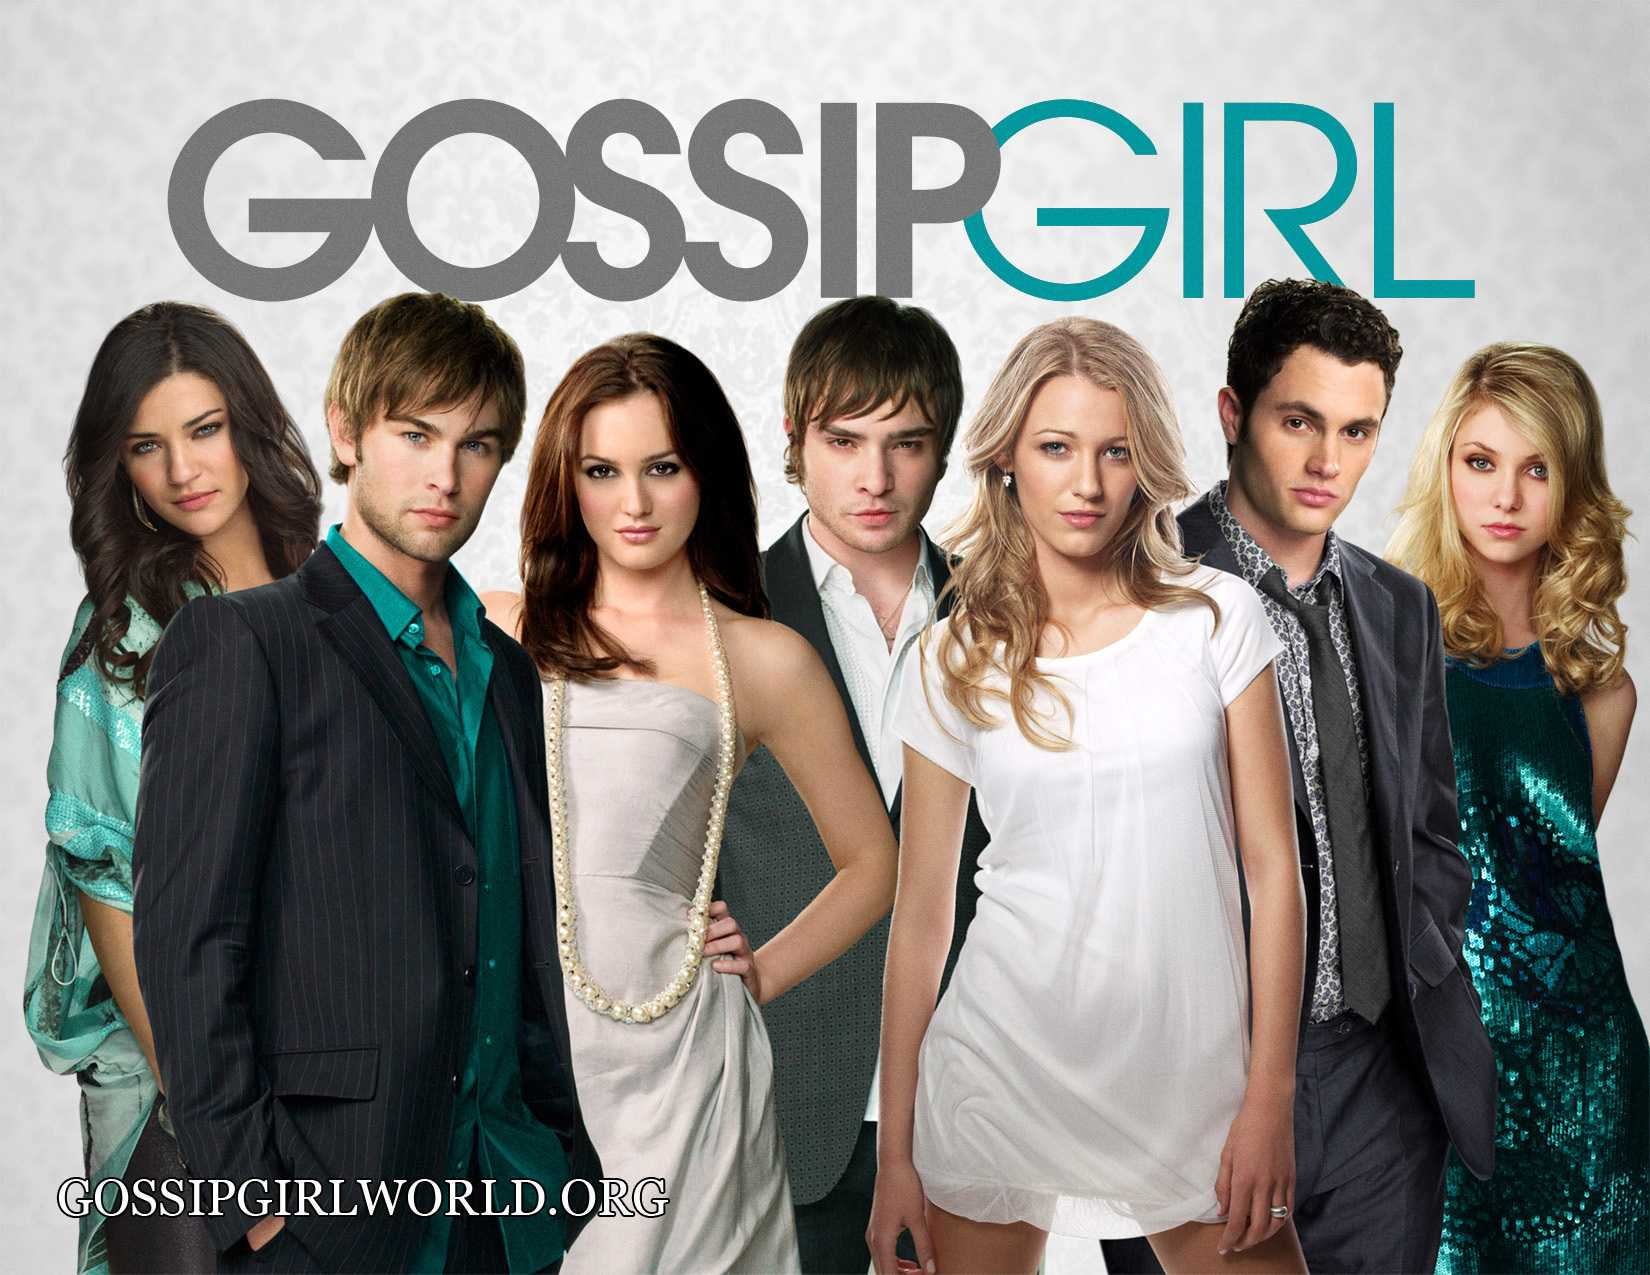 This is the poster of the popular show gossip girl